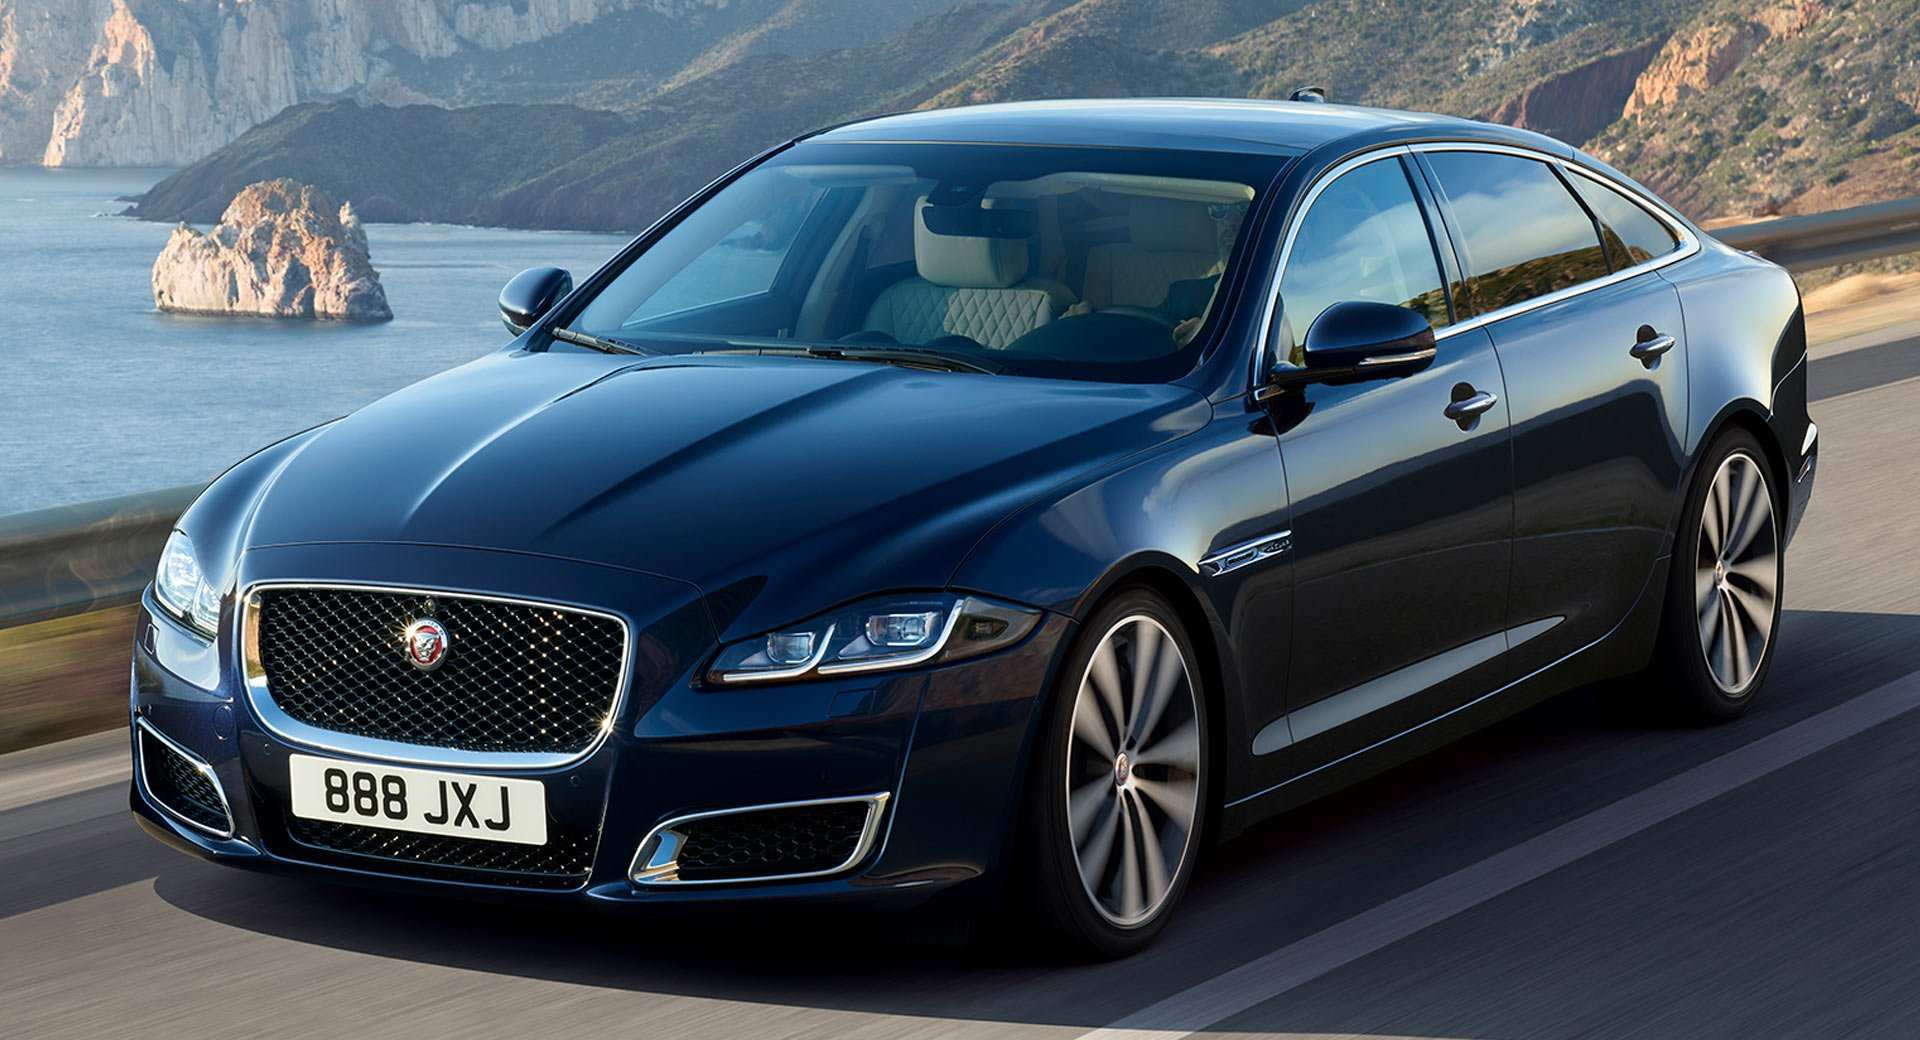 31 New Jaguar Xj New Model 2020 Style by Jaguar Xj New Model 2020